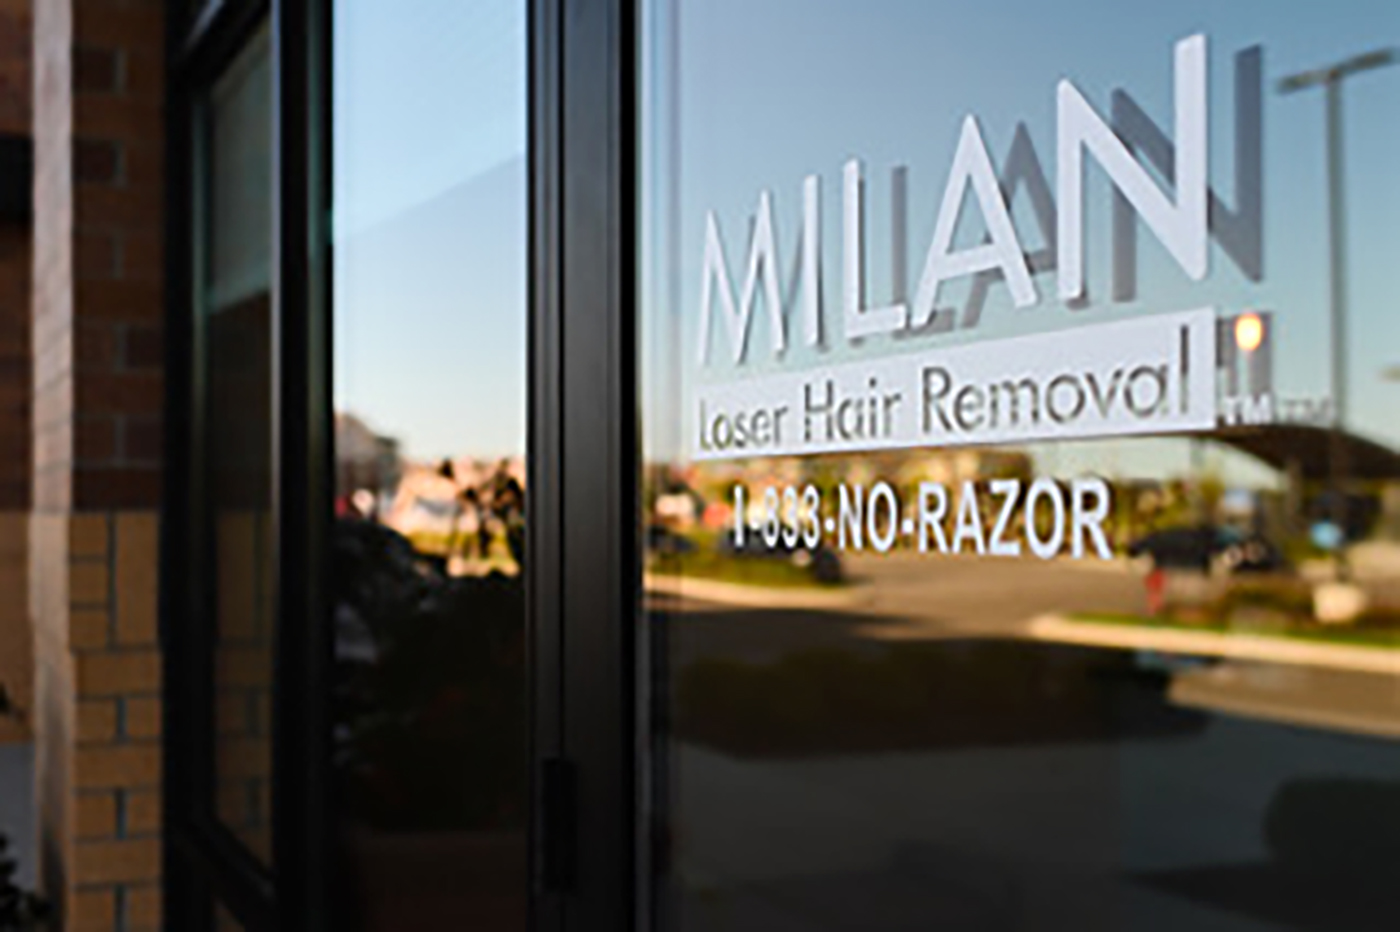 Milan Laser Hair Removal provide some of the highest-quality laser hair removal in the Salt Lake Valley.